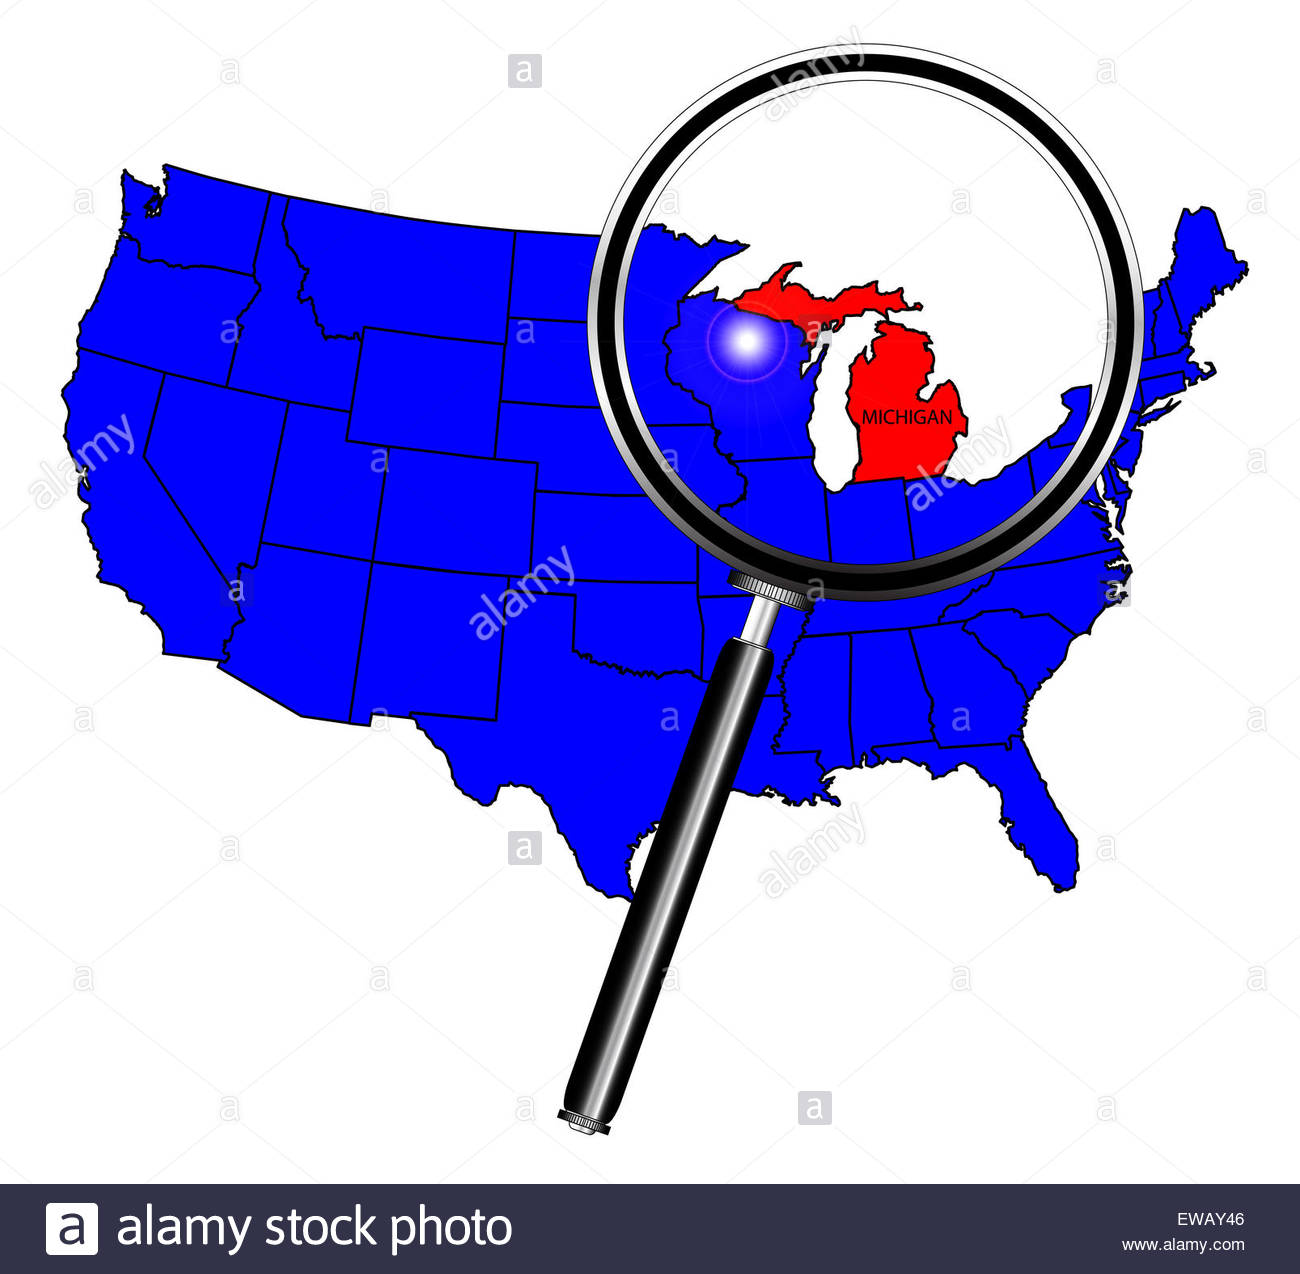 1300x1274 Outline Map State Michigan Map Stock Photos Amp Outline Map State